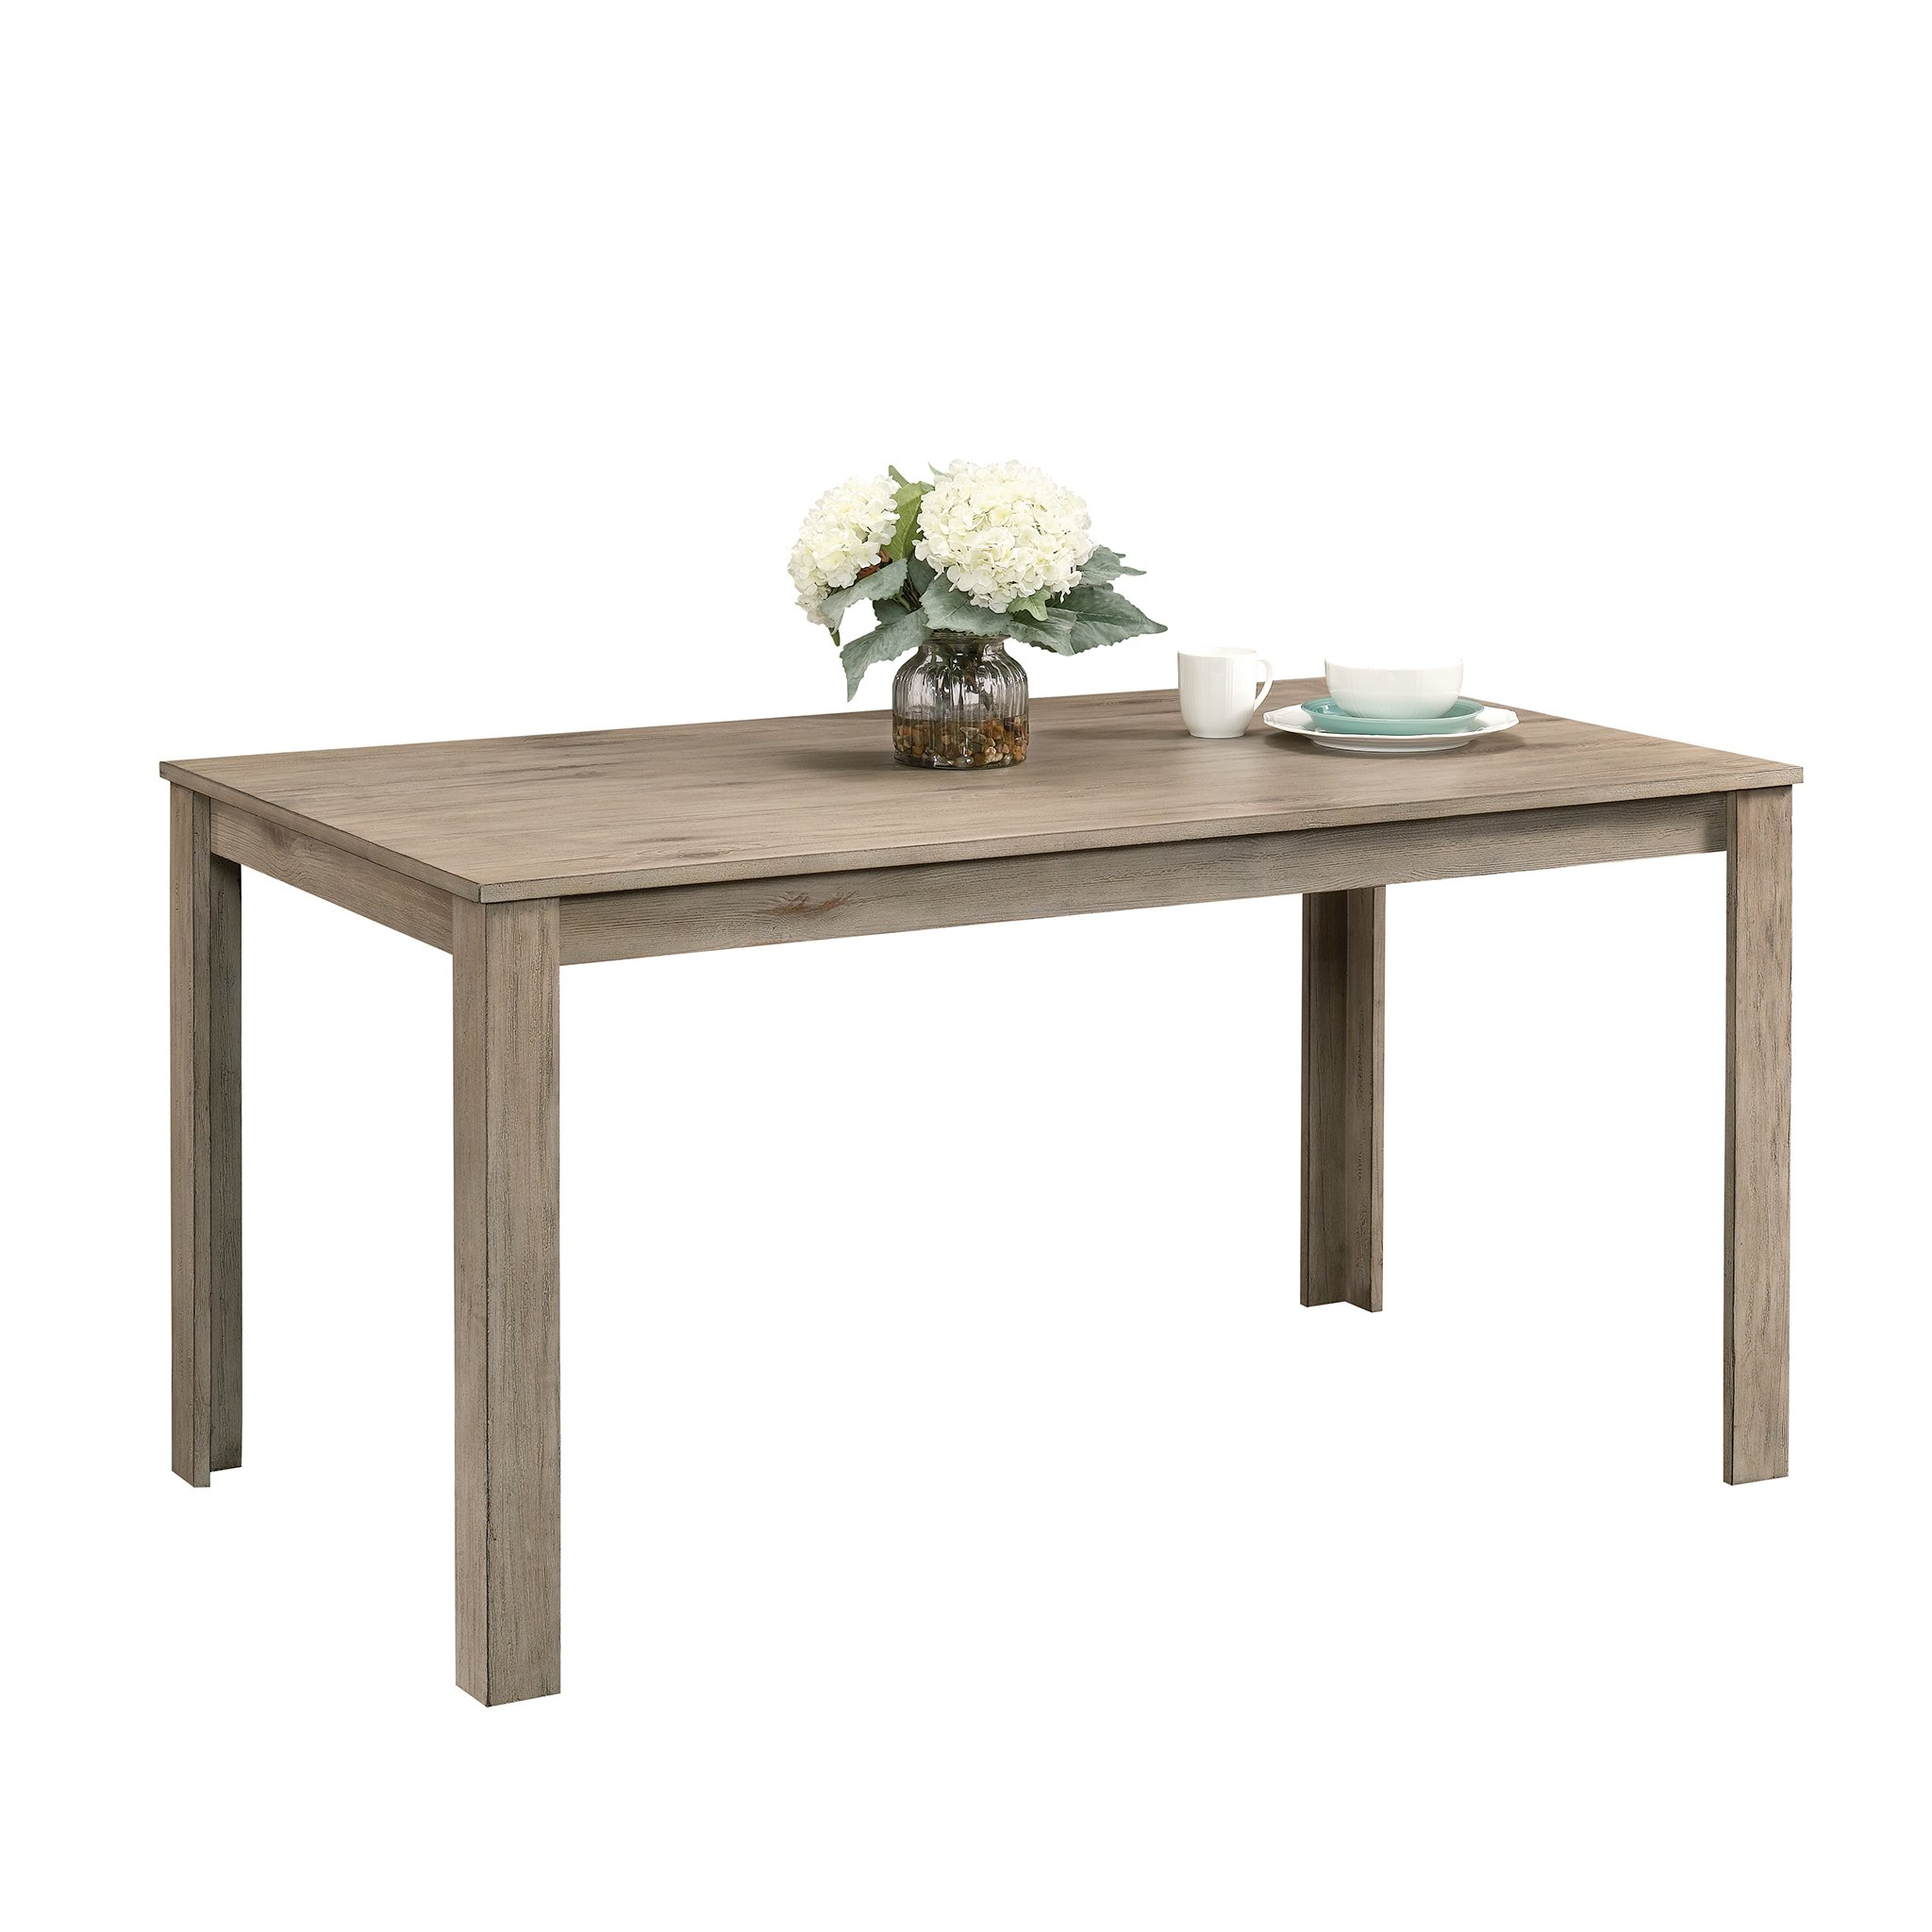 Sauder 418694 New Grange Dining Table, L: 59.76'' x W: 35.00'' x H: 30.00'', White Pine finish by Sauder